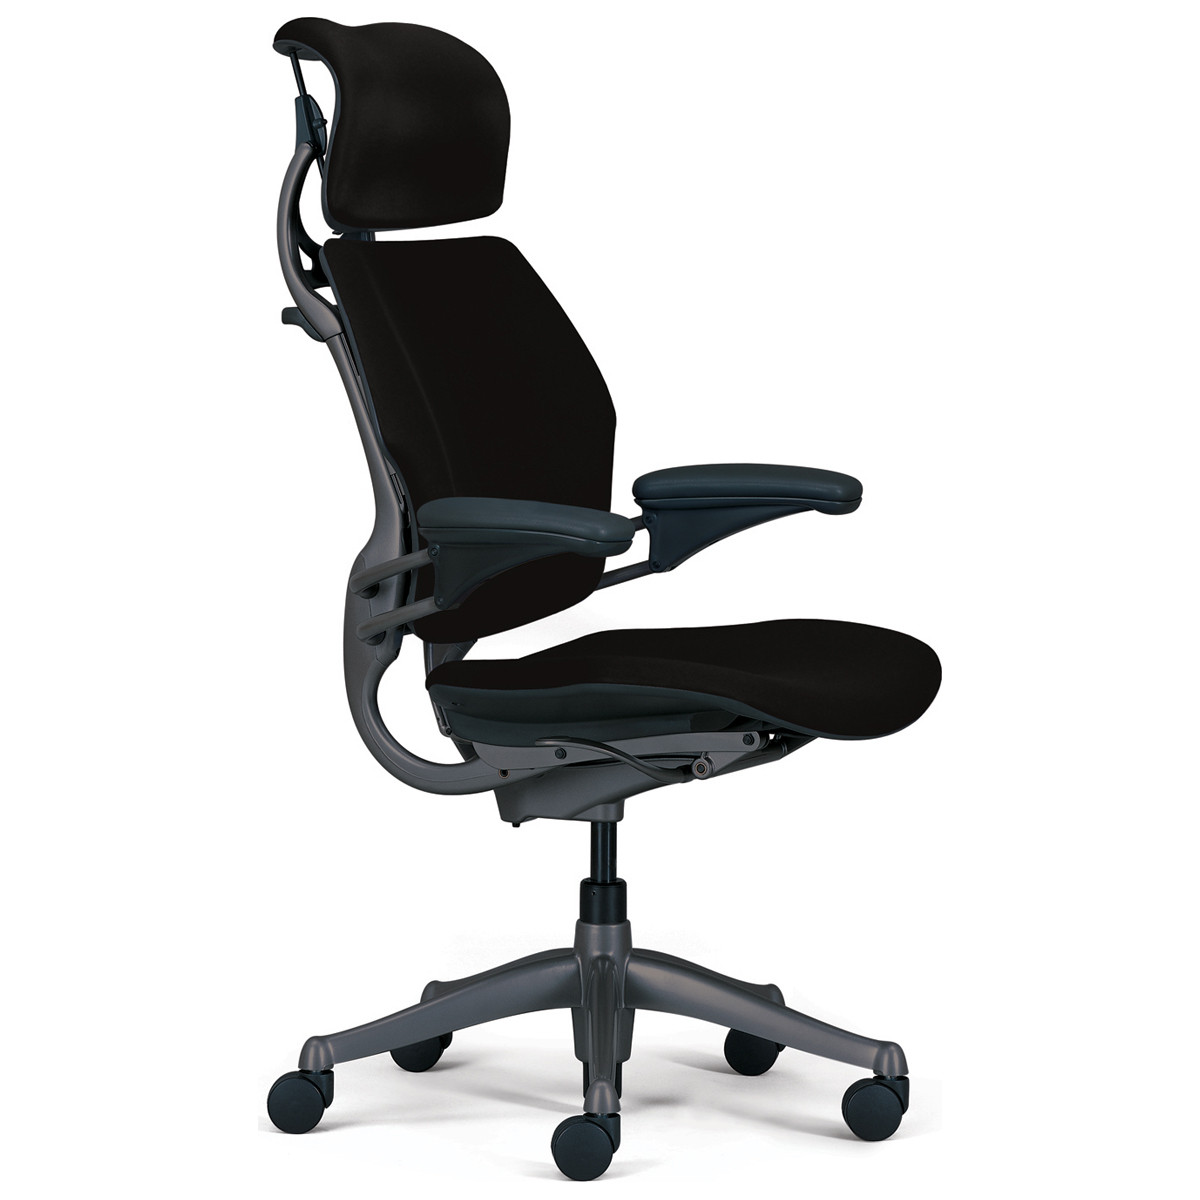 Humanscale Liberty Chair Humanscale Freedom Chair An Ergonomic Chair With Modern